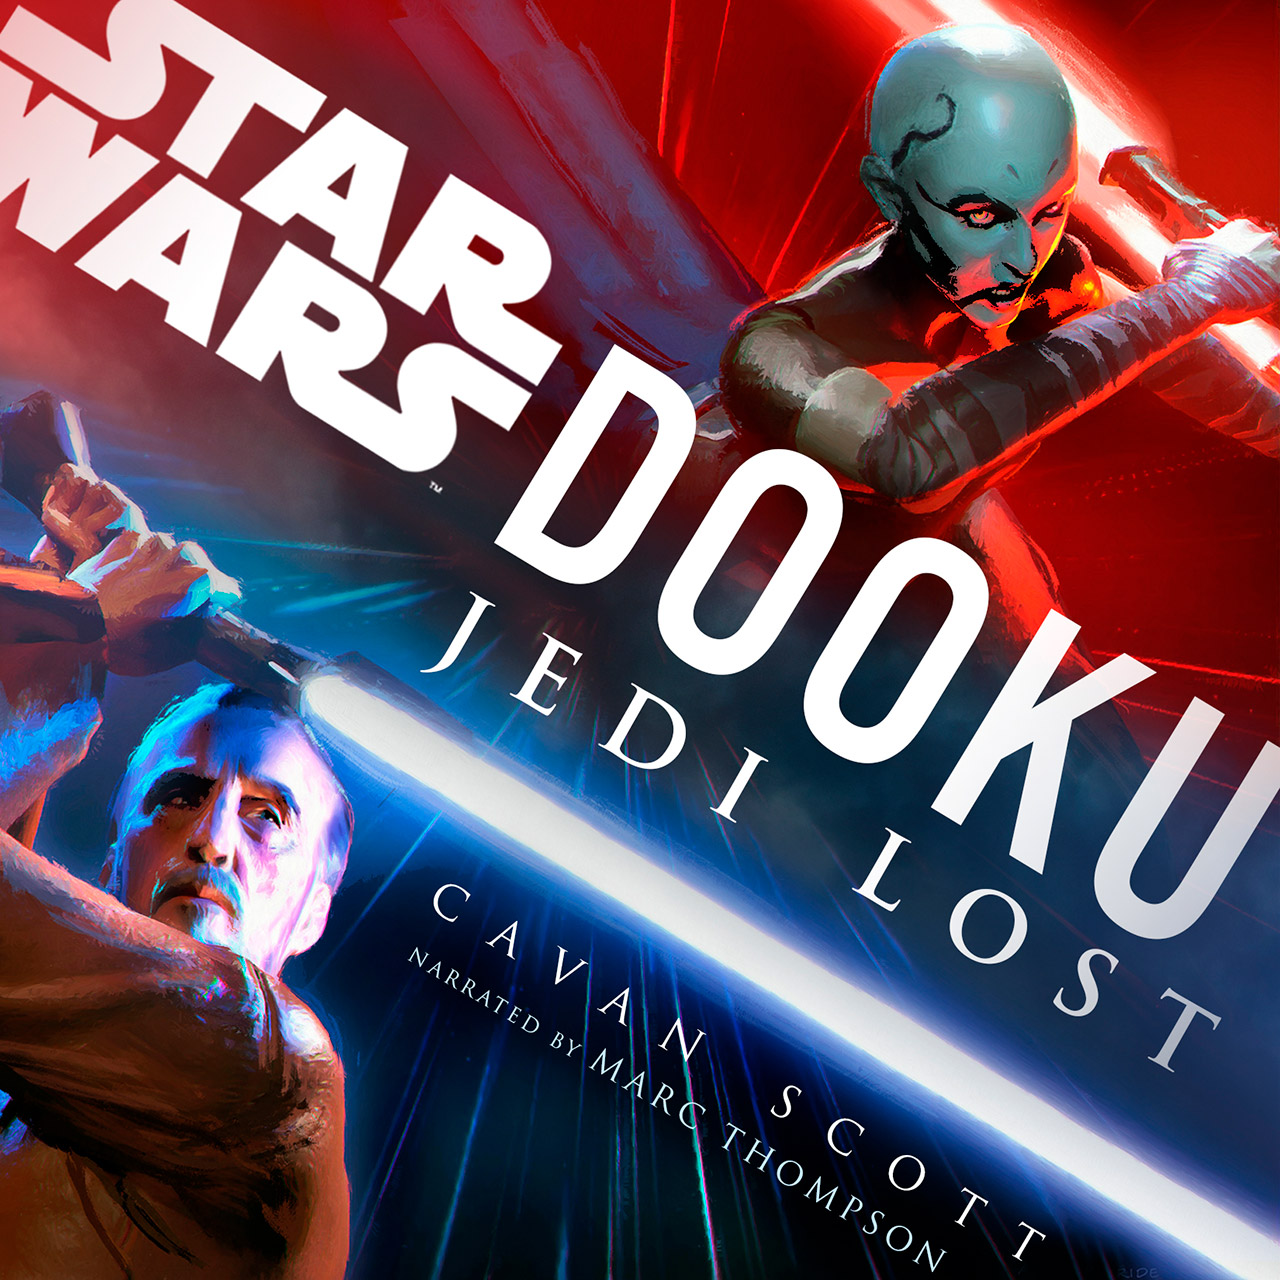 Star Wars Dooku Jedi Lost